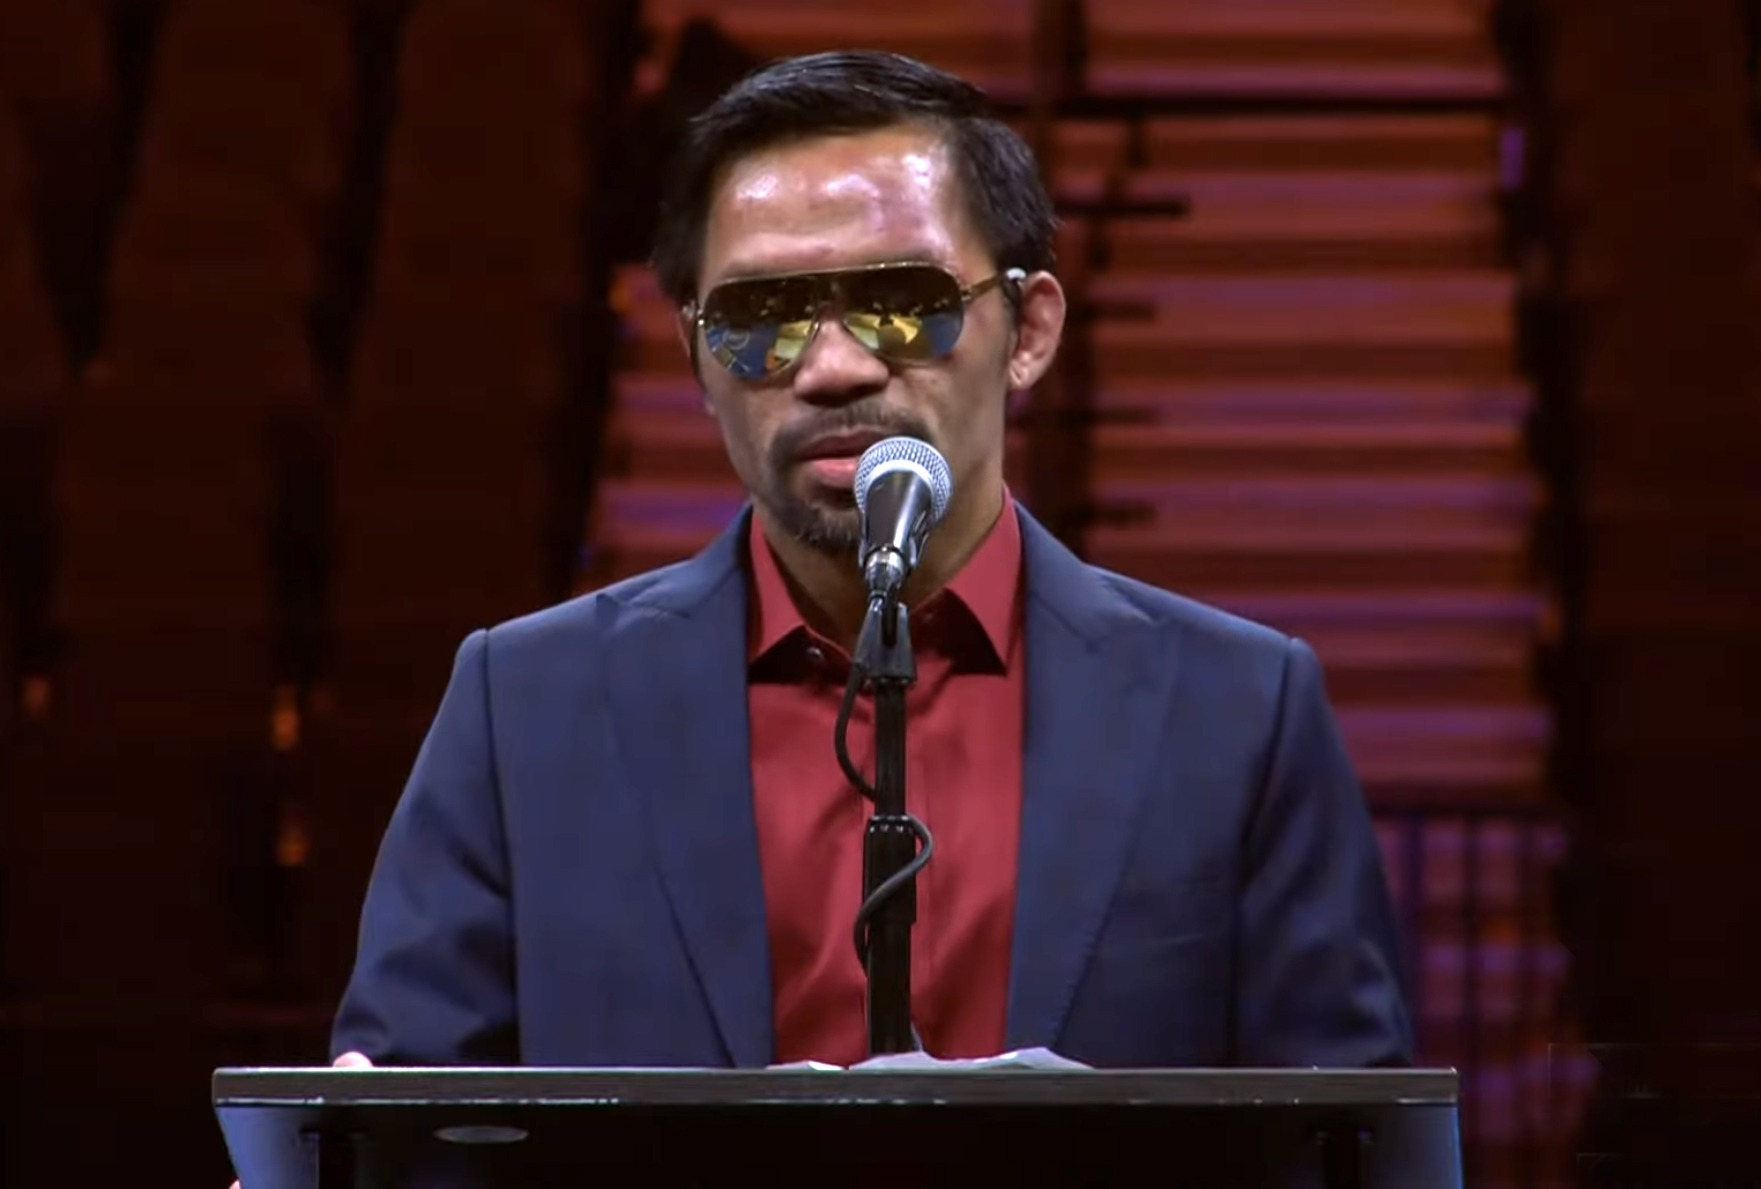 Manny Pacquiao's next big fight is likely in the political ring, not the boxing ring. Photo: Premier Boxing Champions/Screen Shot